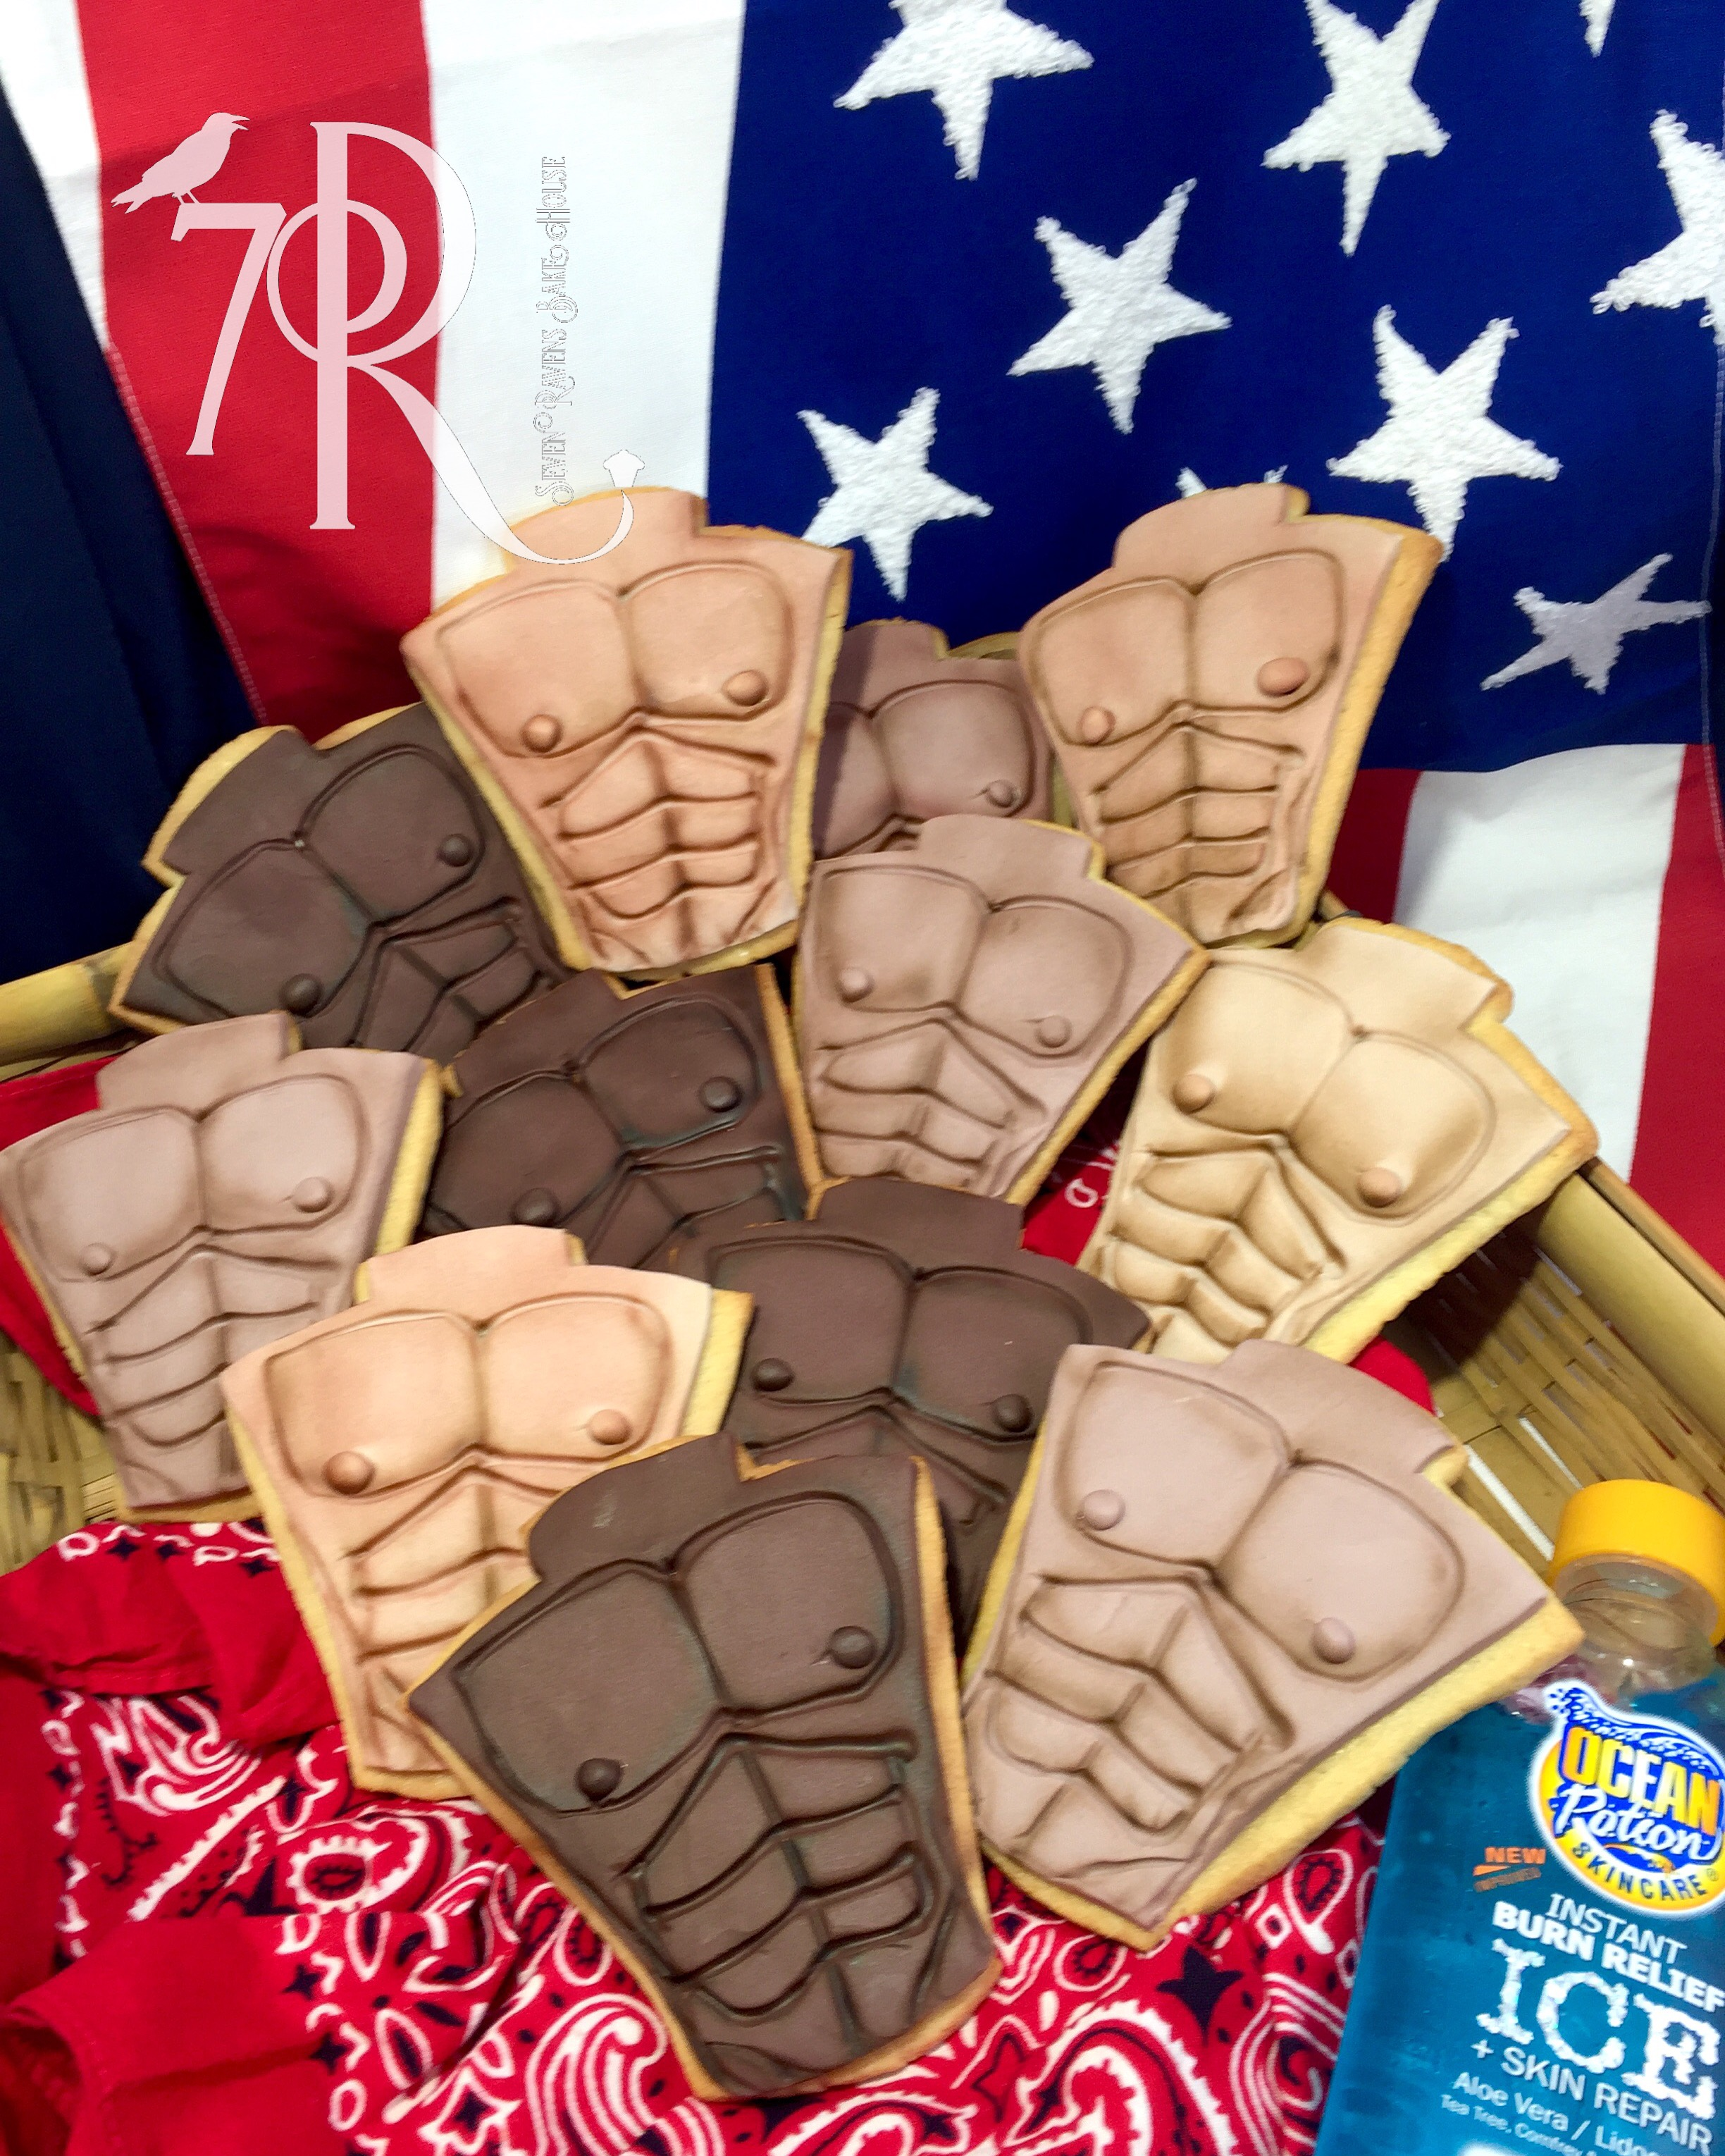 Ptown Torso Beach Cookies 4th of July